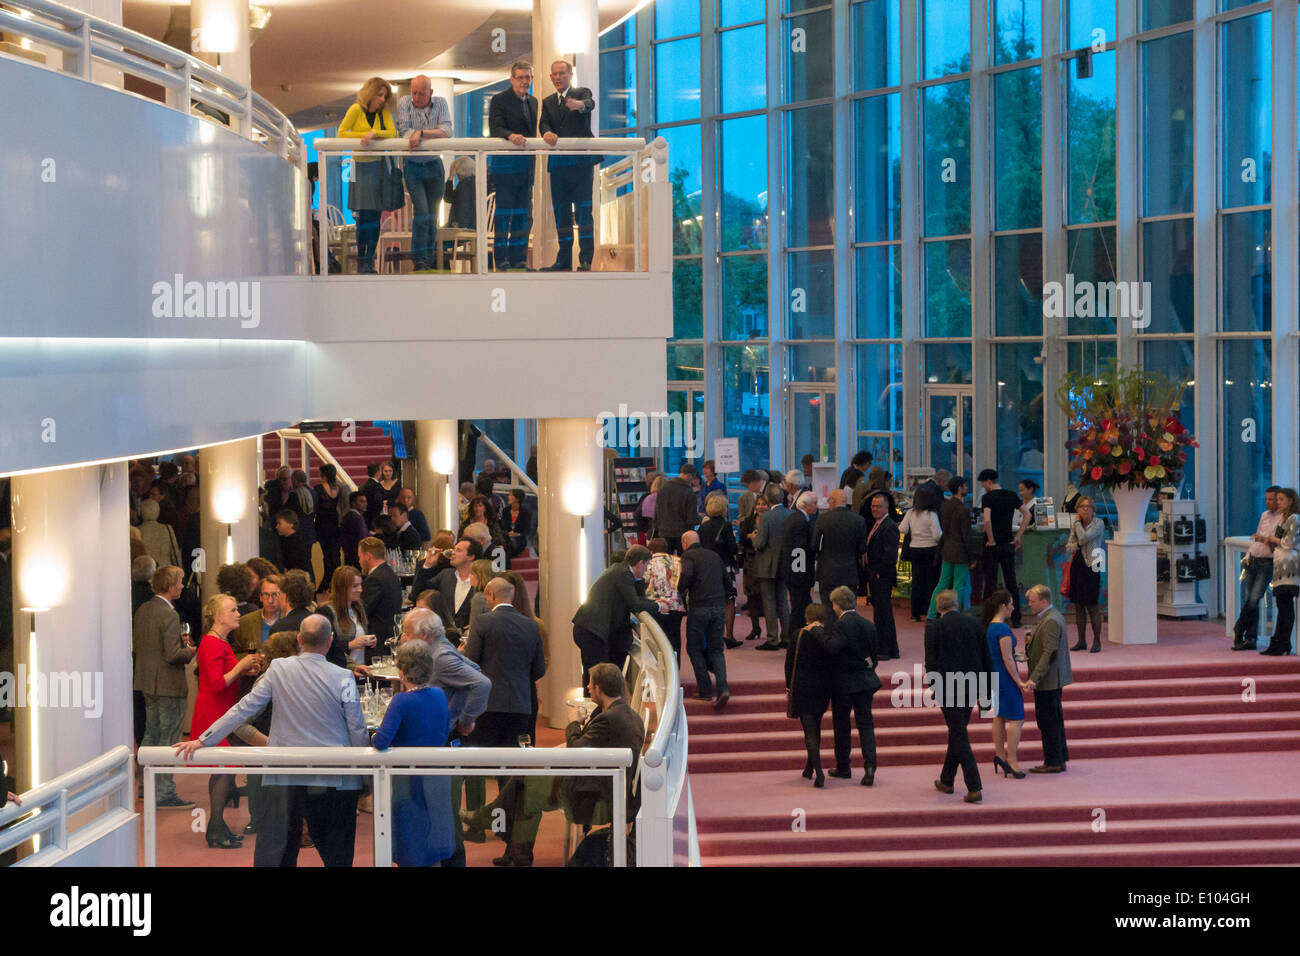 Amsterdam Stopera interior Dutch National Opera Building foyer hall with people visitors on opening night during - Stock Image